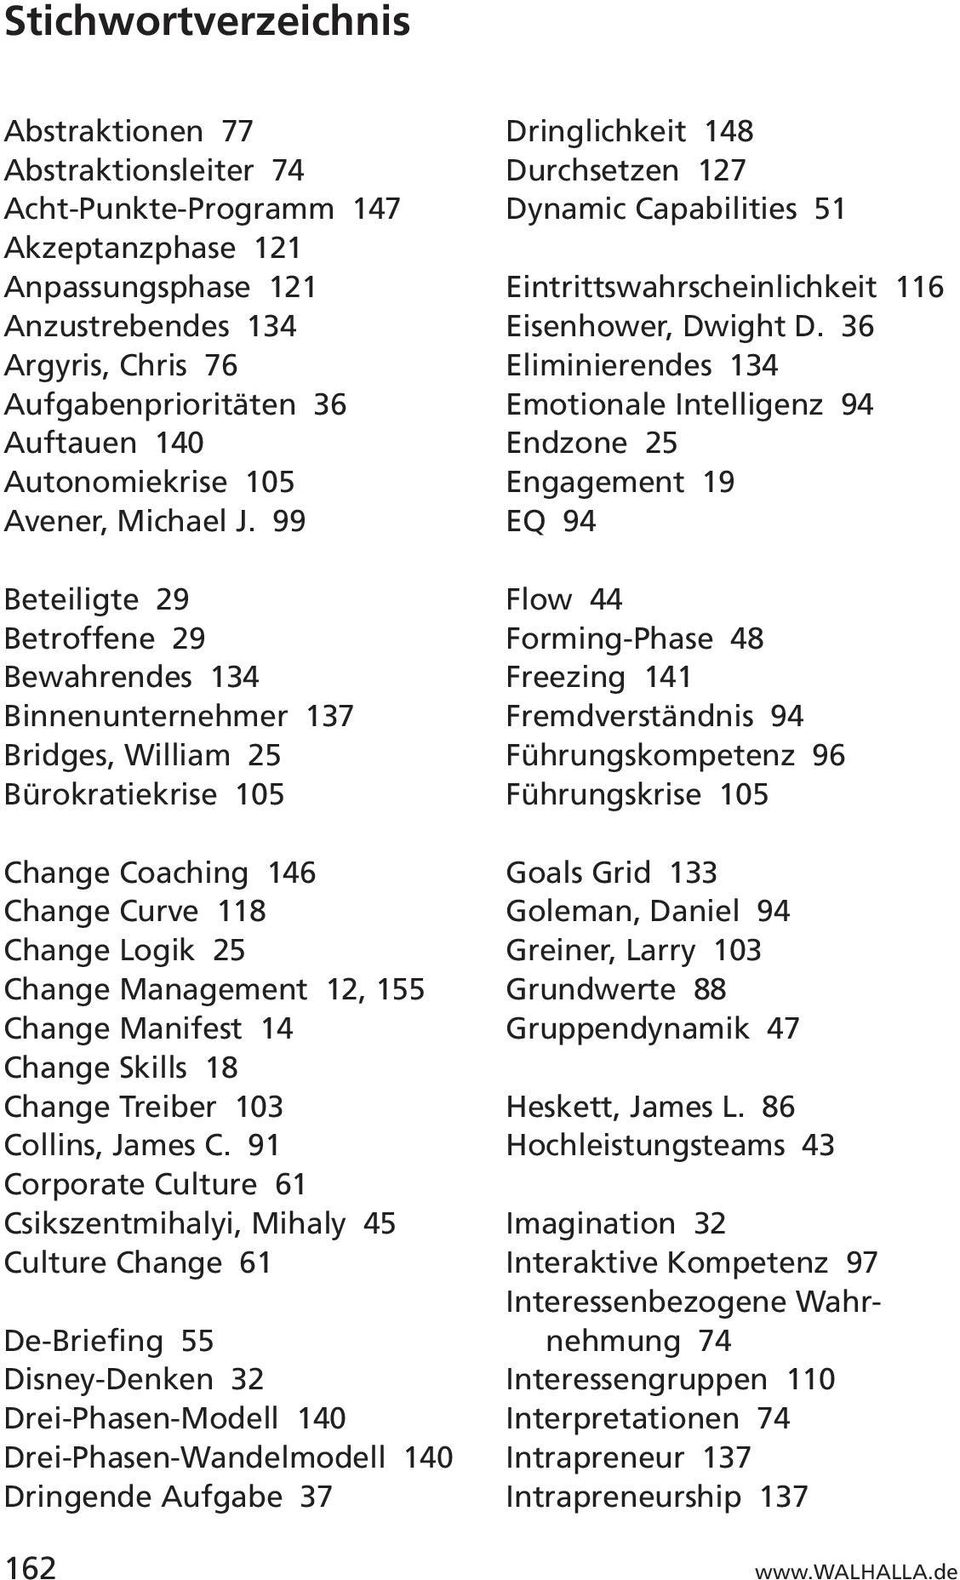 99 Beteiligte 29 Betroffene 29 Bewahrendes 134 Binnenunternehmer 137 Bridges, William 25 Bürokratiekrise 105 Change Coaching 146 Change Curve 118 Change Logik 25 Change Management 12, 155 Change